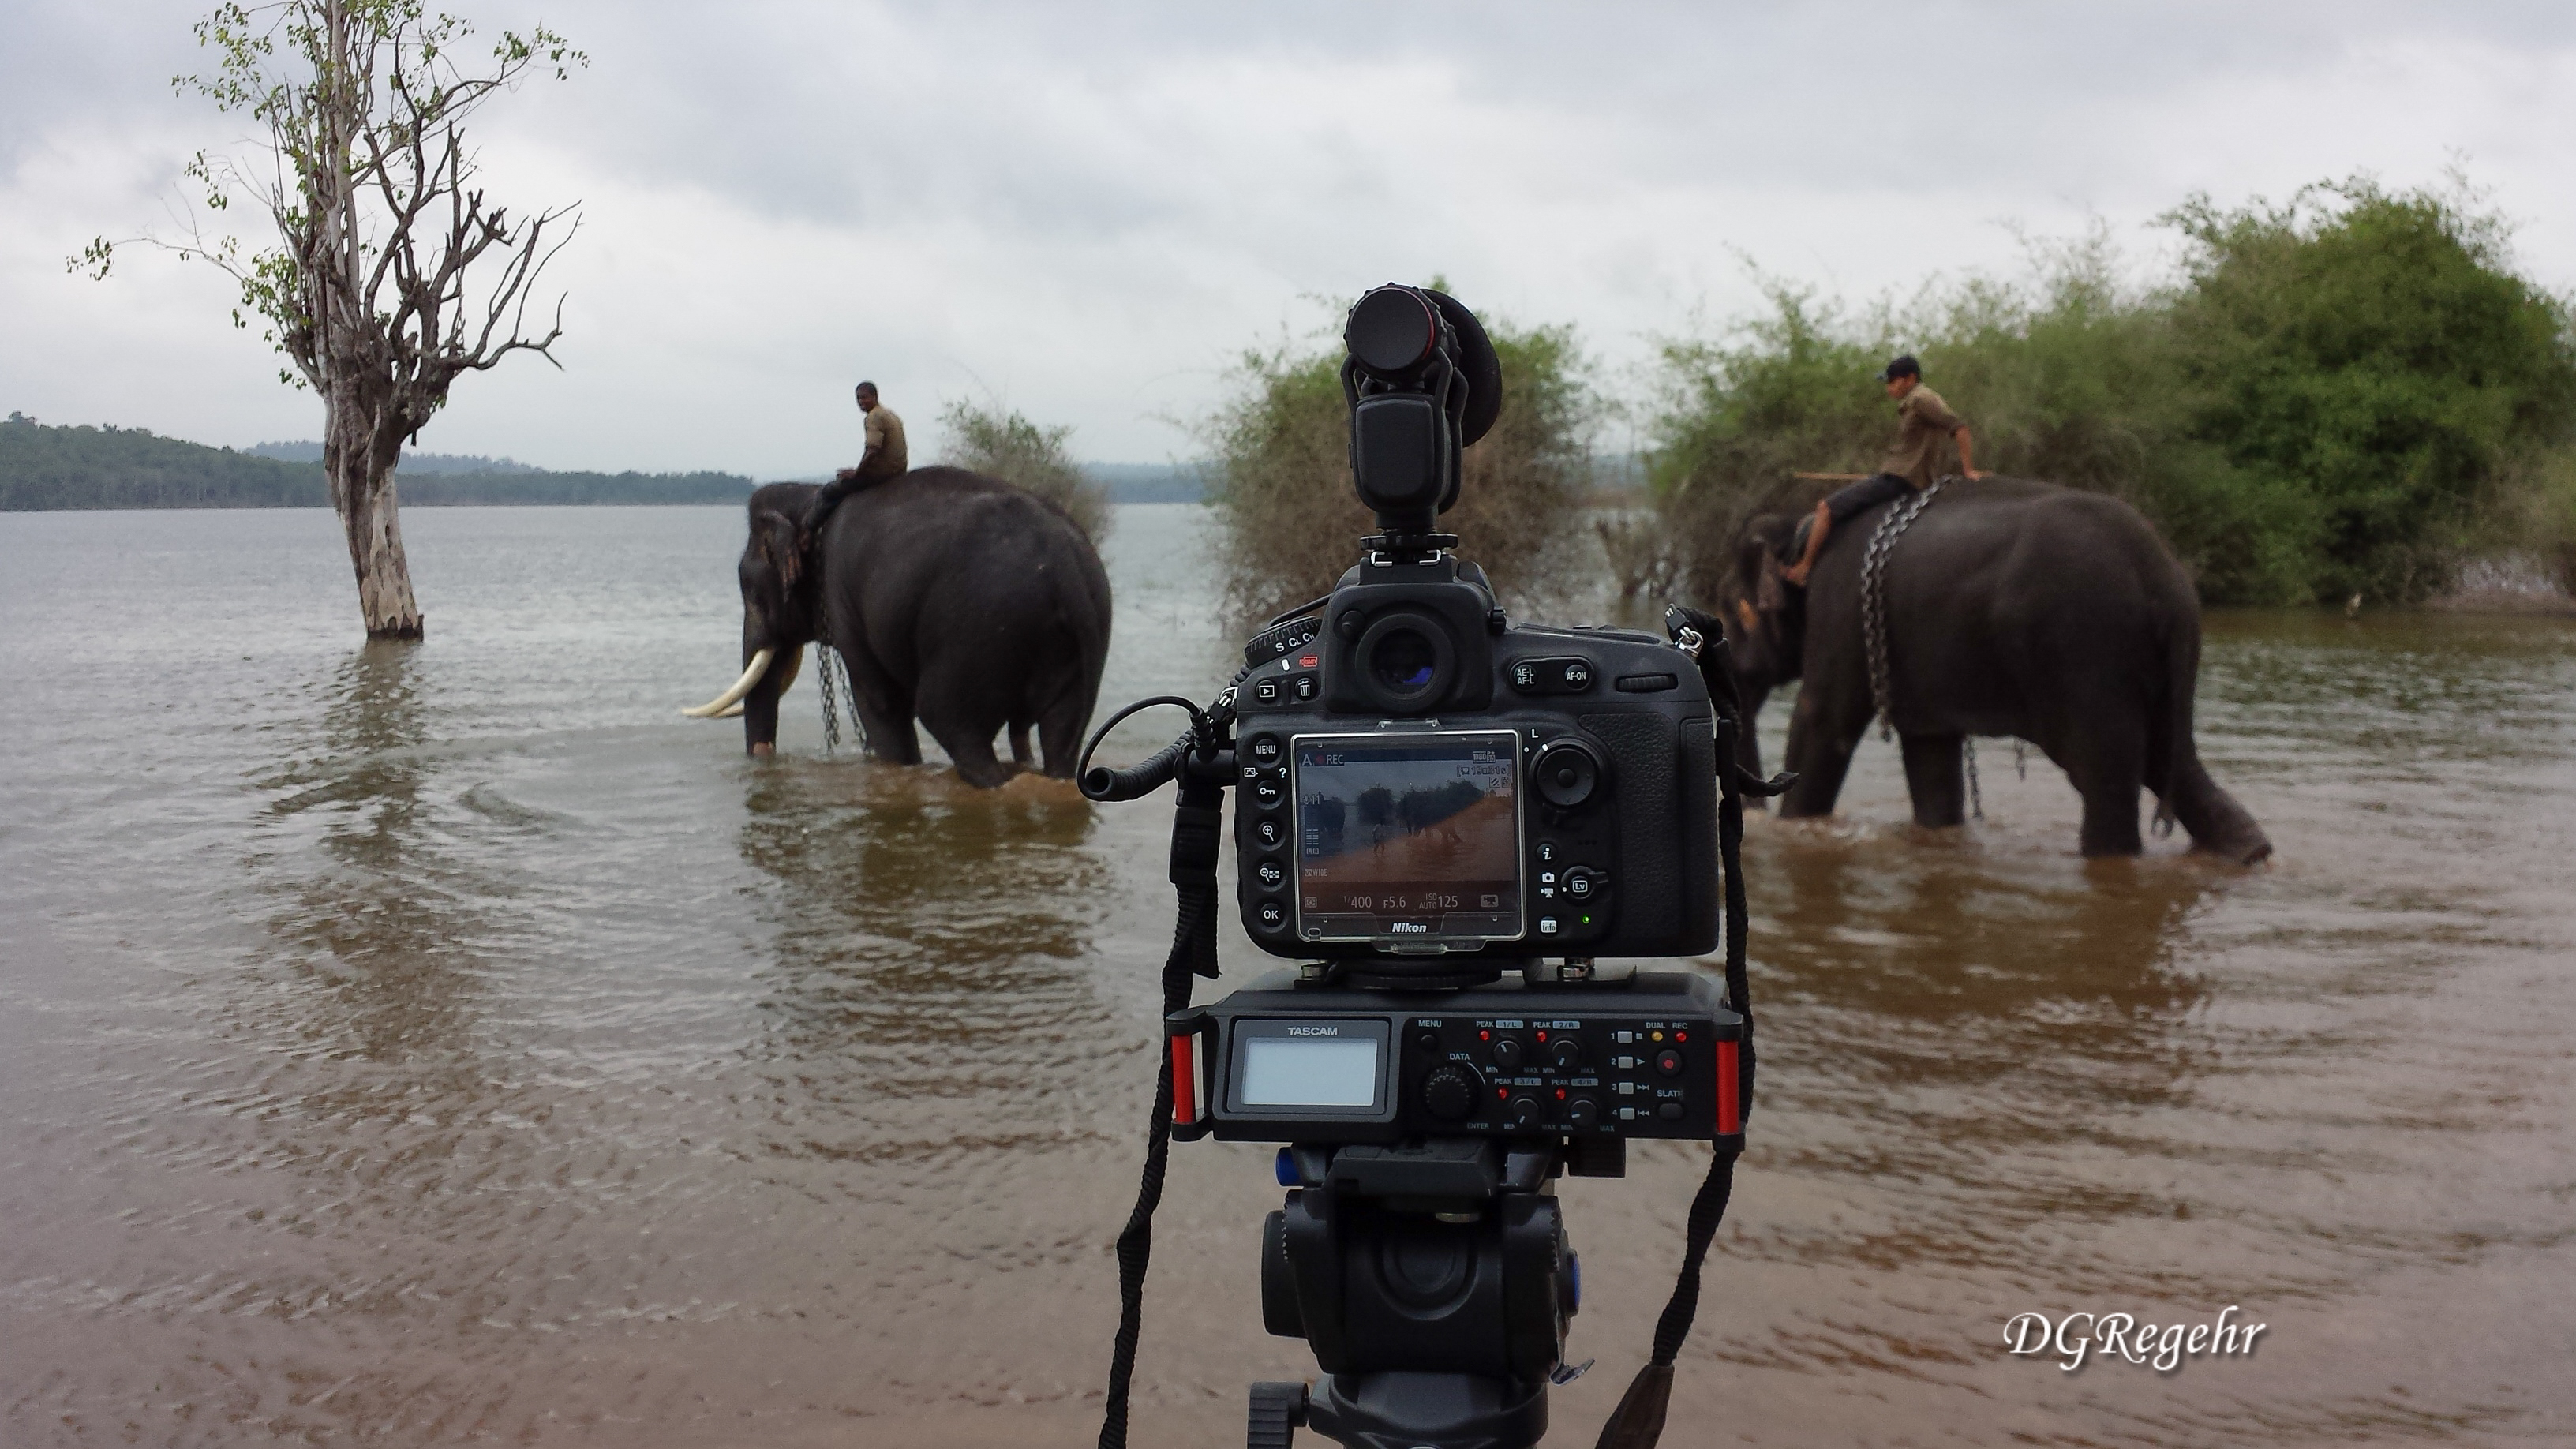 DR-70D with Elephants